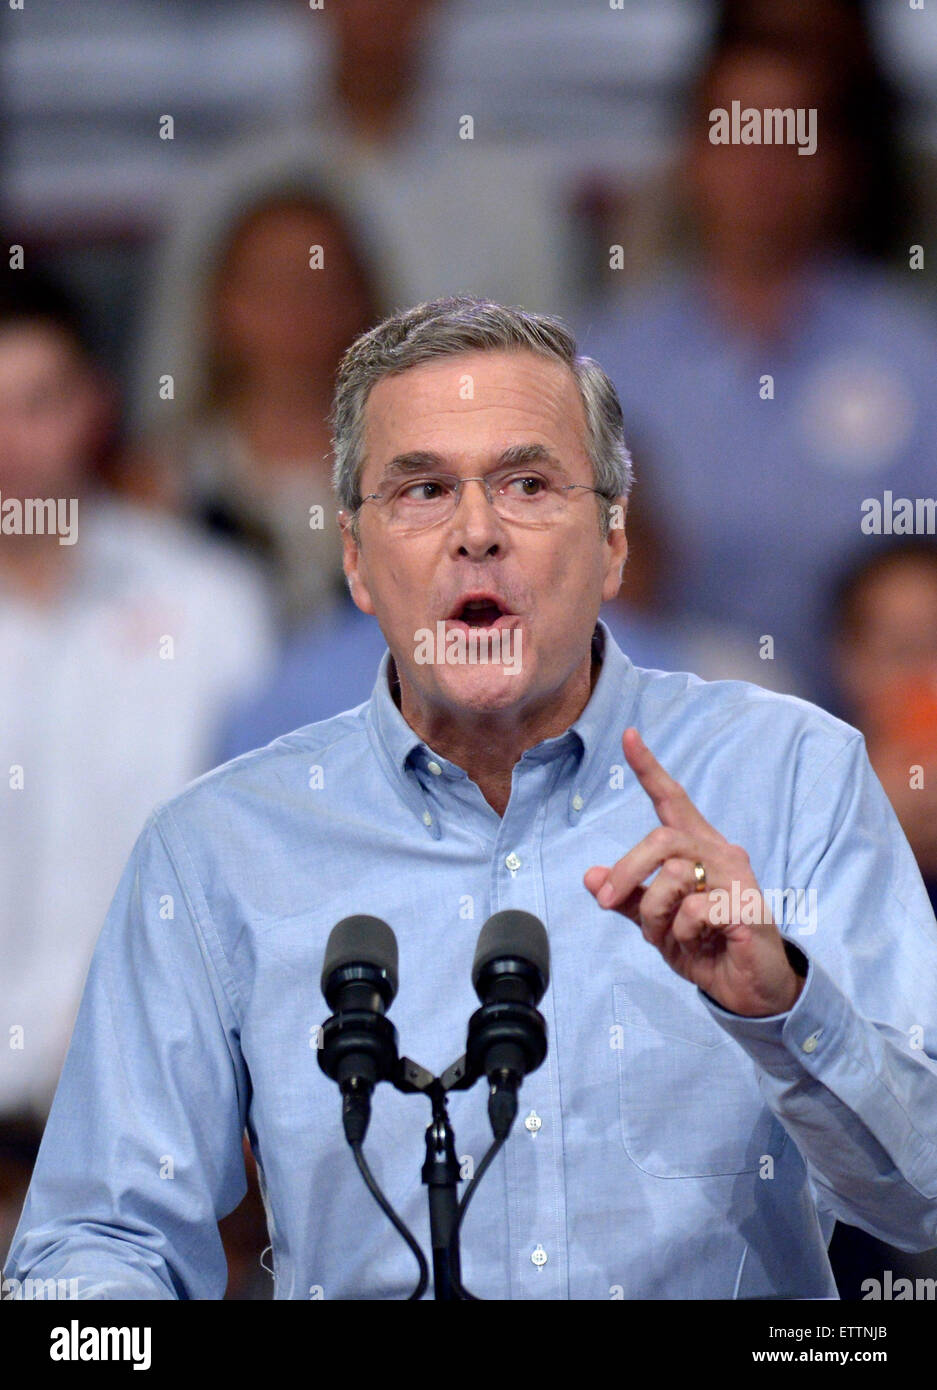 Miami, USA. 15th June, 2015. Former Florida Governor Jeb Bush speaks at Kendall campus of Miami Dade College in - Stock Image